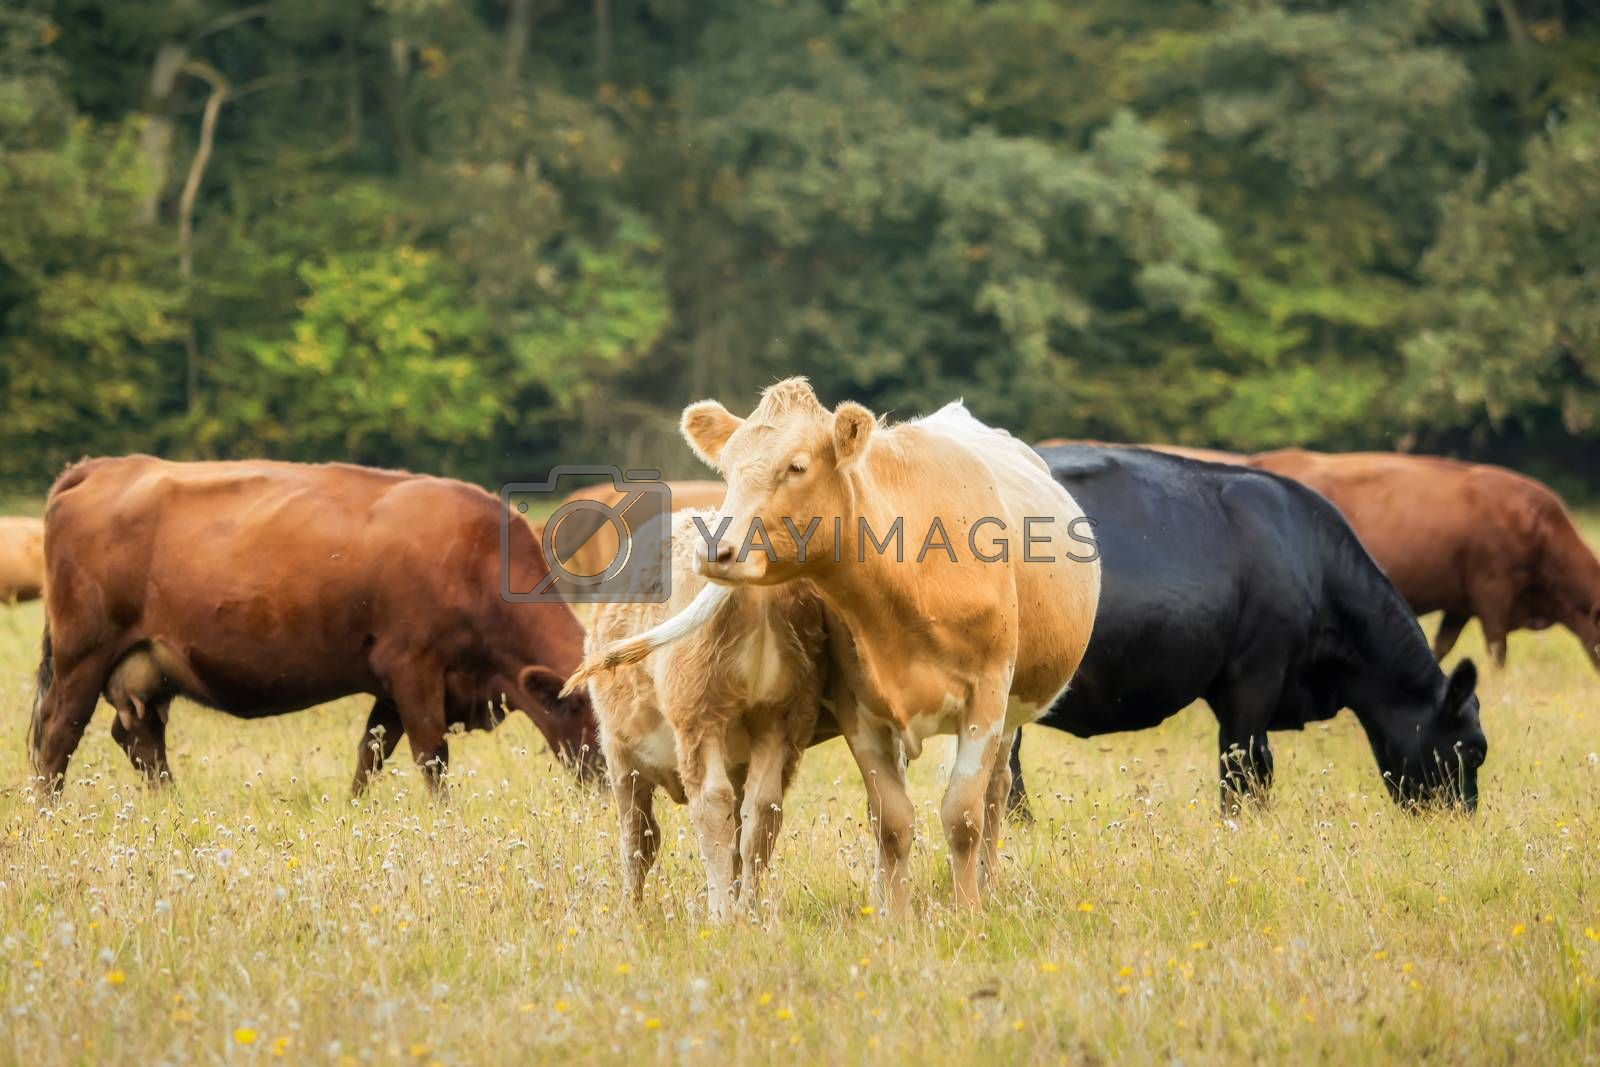 Many beautiful cows out in the pasture